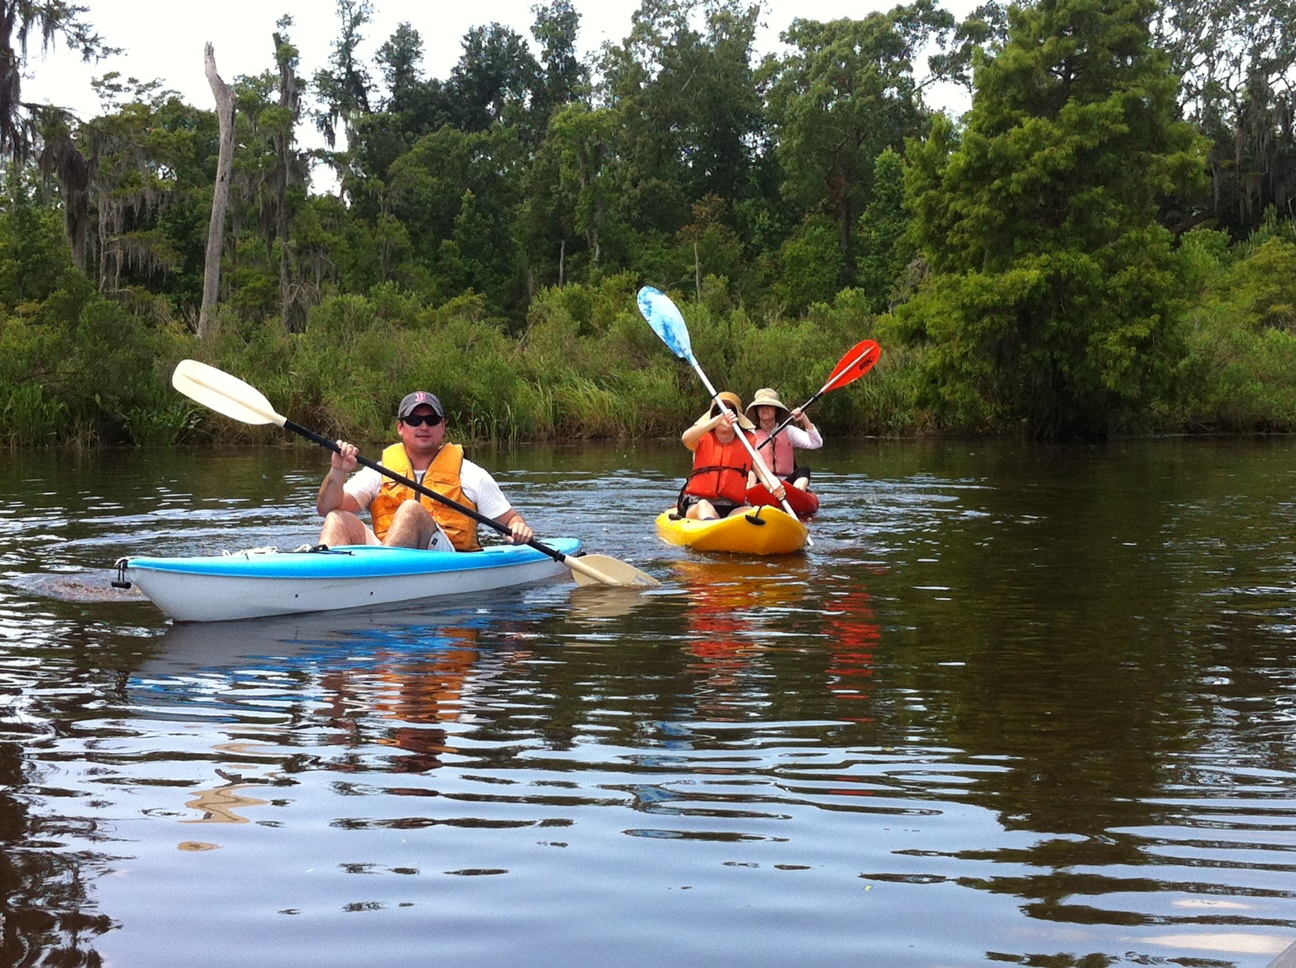 Chasing alligators on our family kayak trip to Fontainebleau State Park